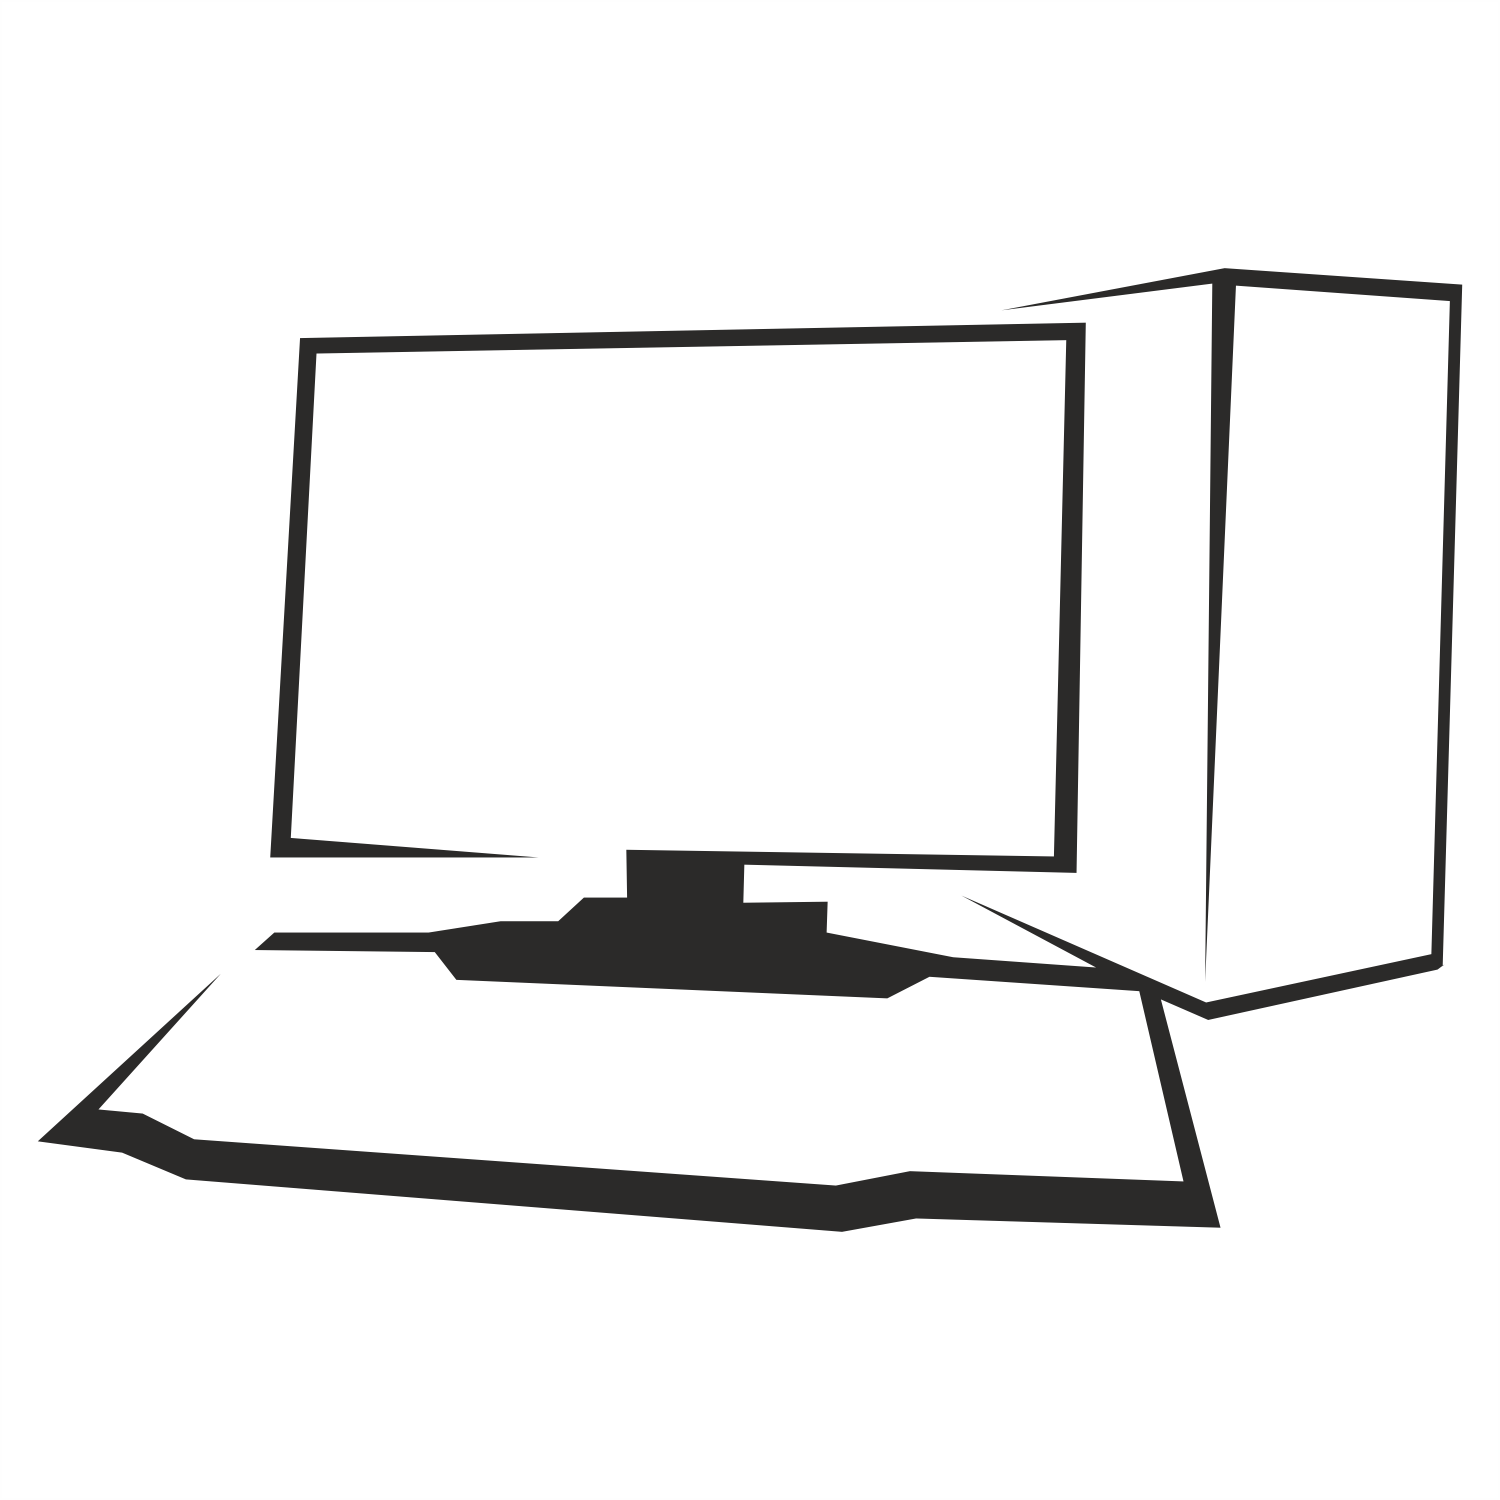 10 Free Computer Vector Images